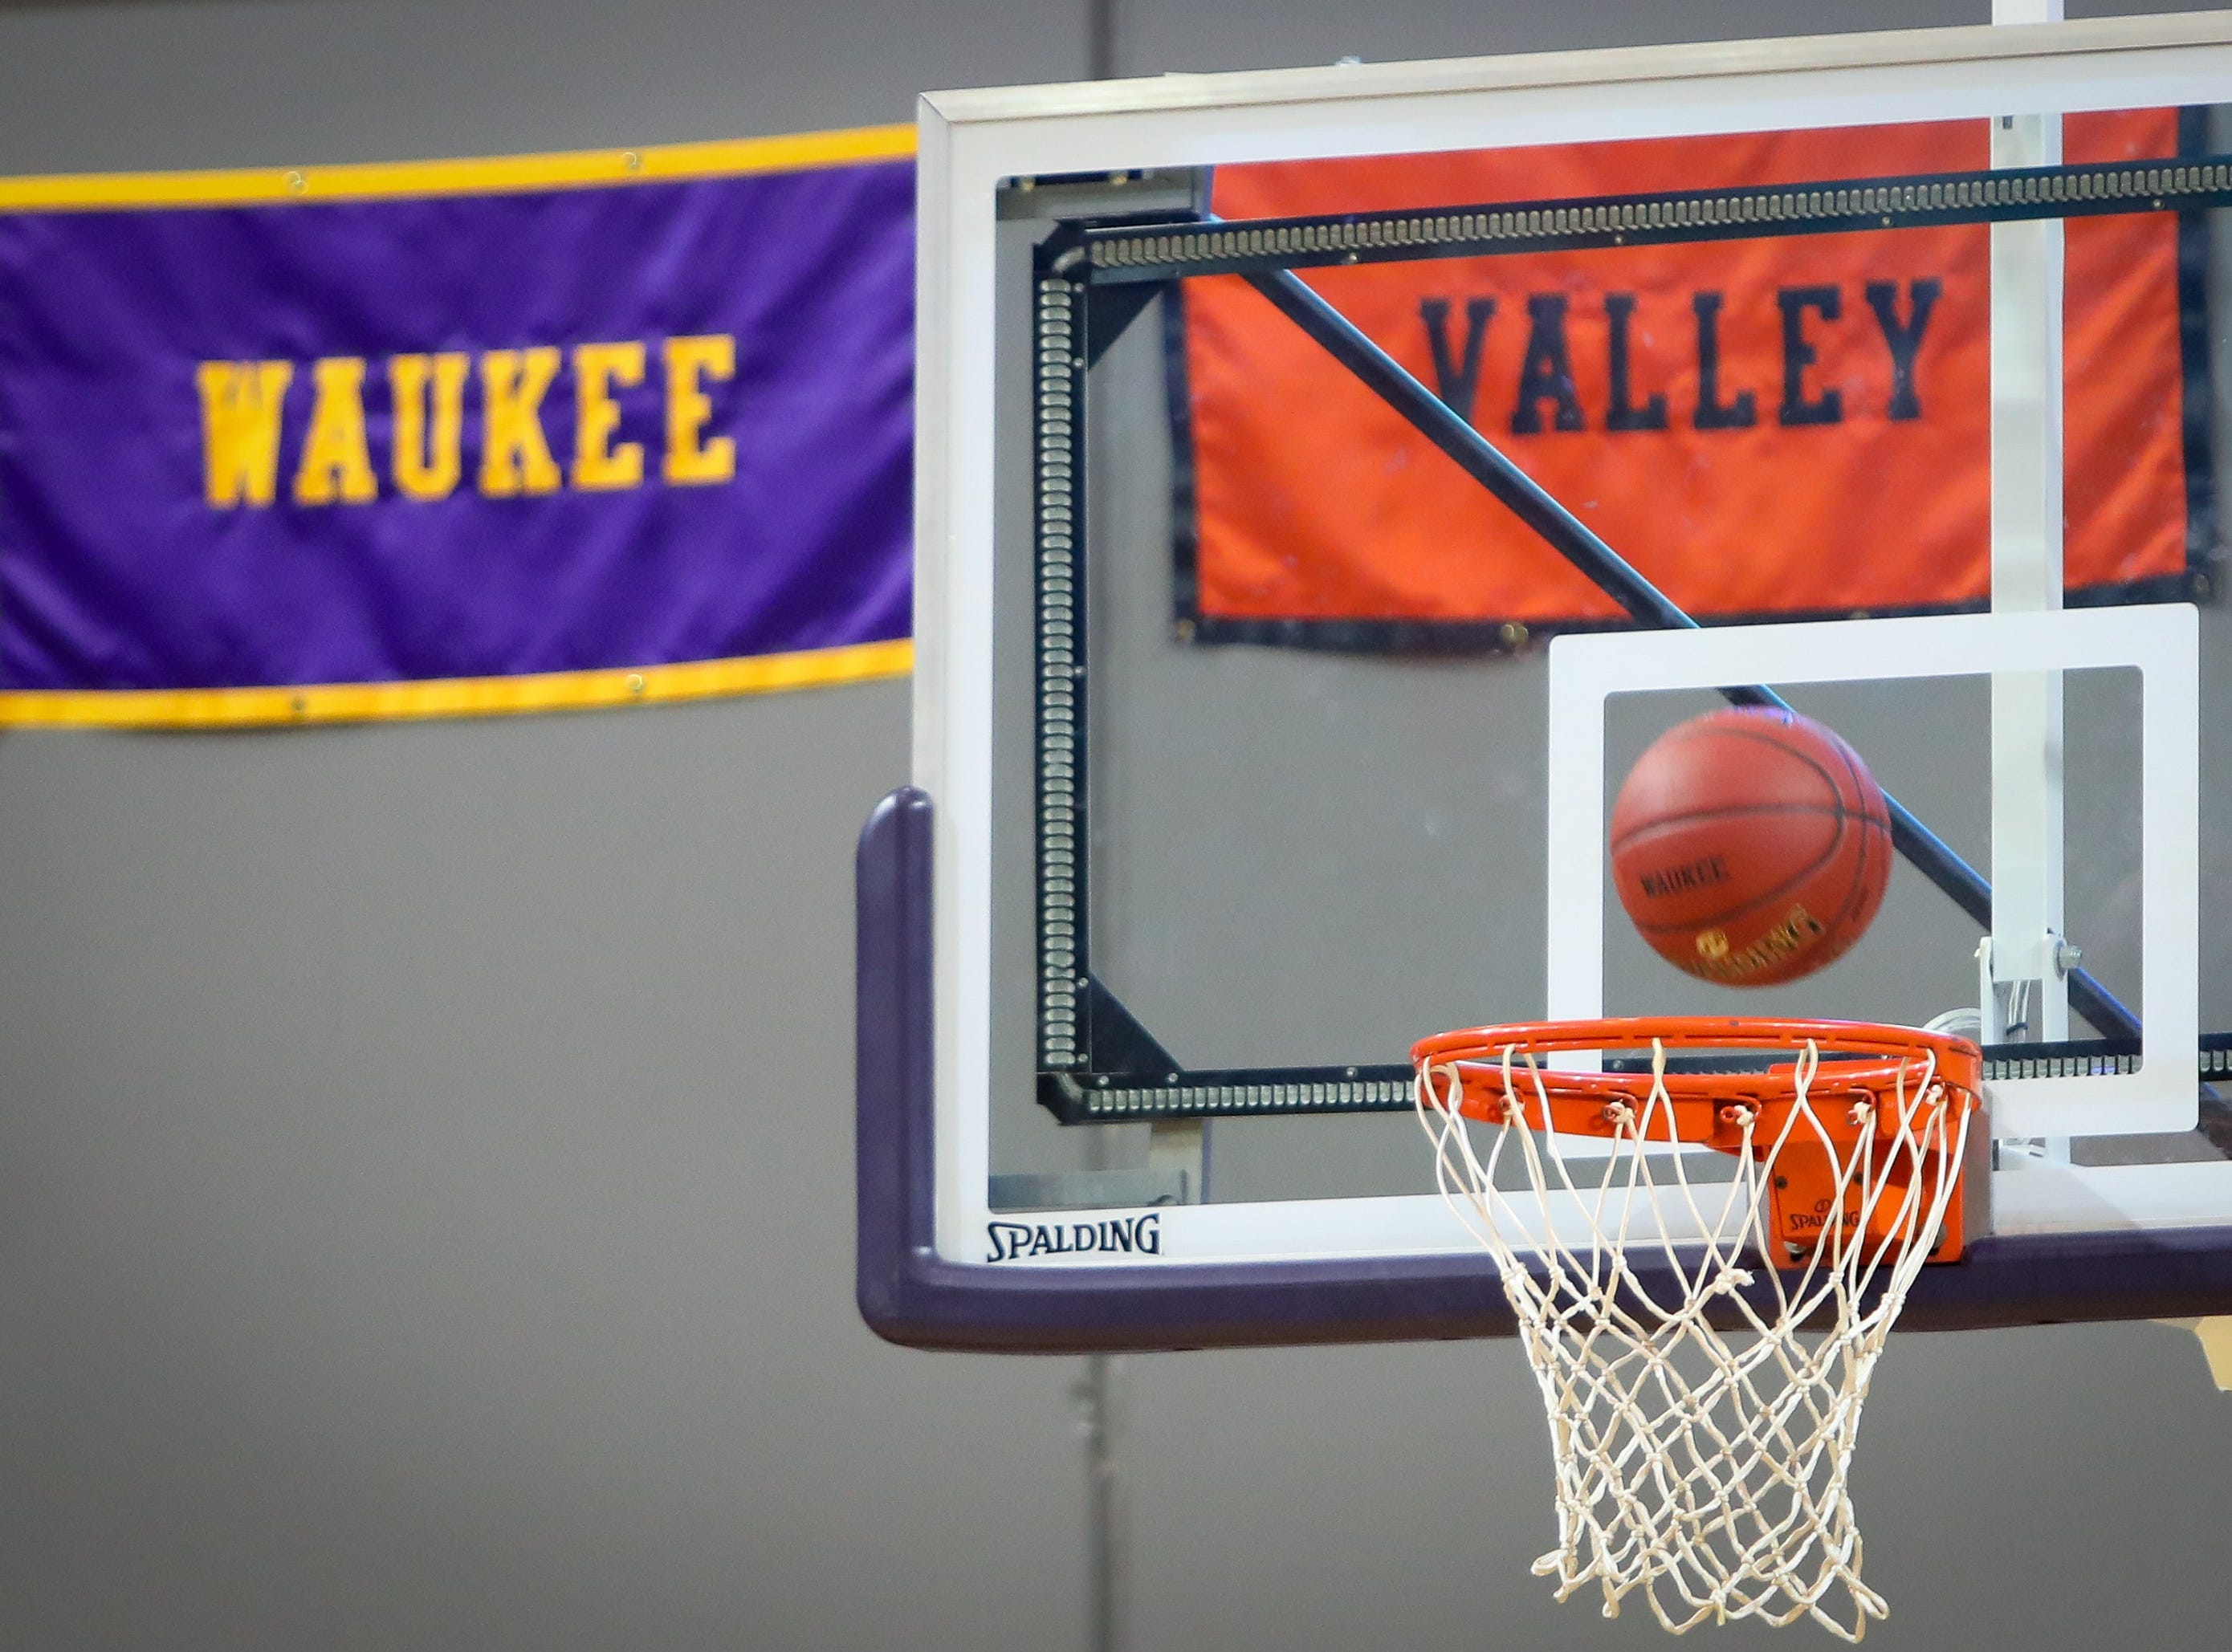 A detailed view of the Waukee and Valley signs is seen during a boys high school basketball game between the Valley Tigers and the Waukee Warriors at Waukee High School on Dec. 14, 2018 in Waukee, Iowa.